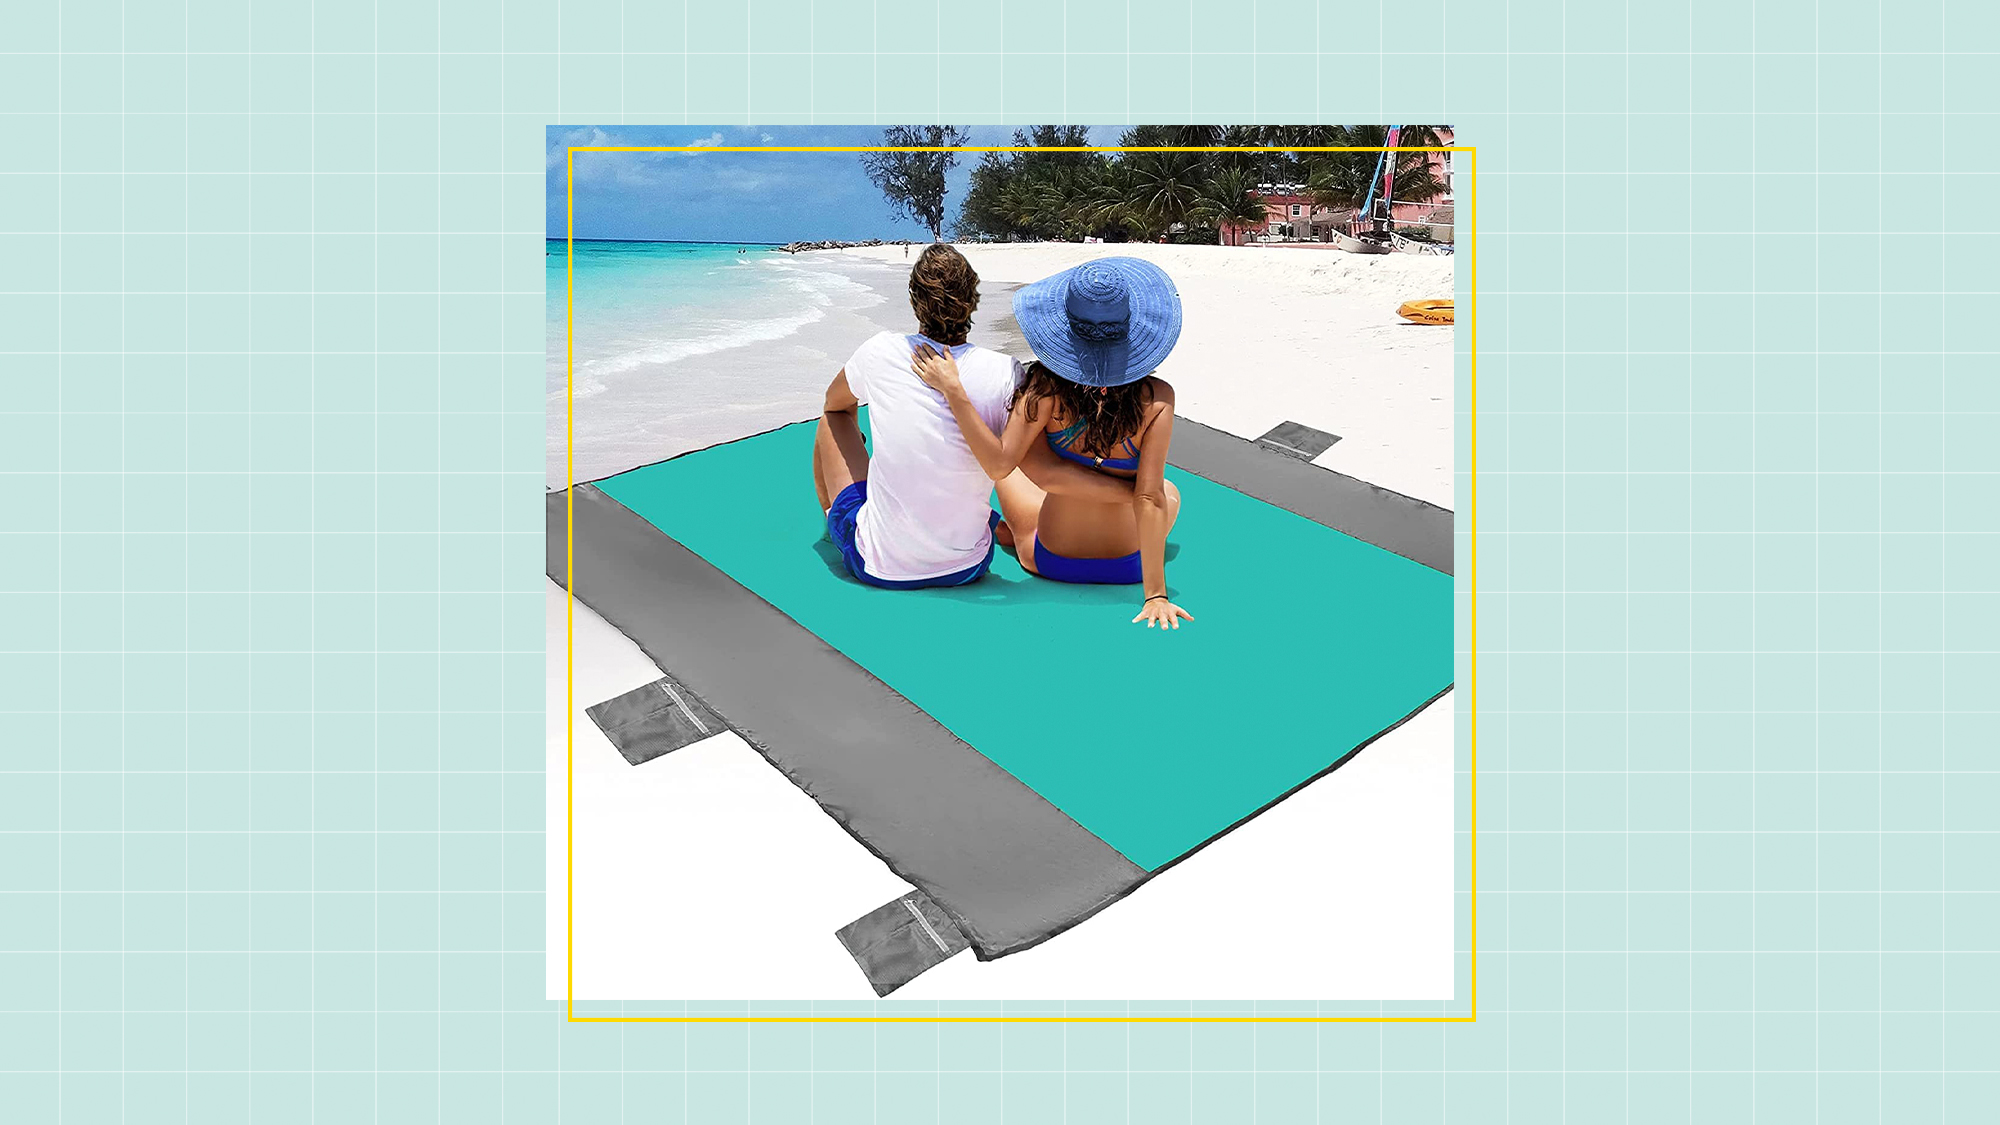 POPCHOSE Sandfree Beach Blanket, Large Sandproof Beach Mat for 4-7 Adults